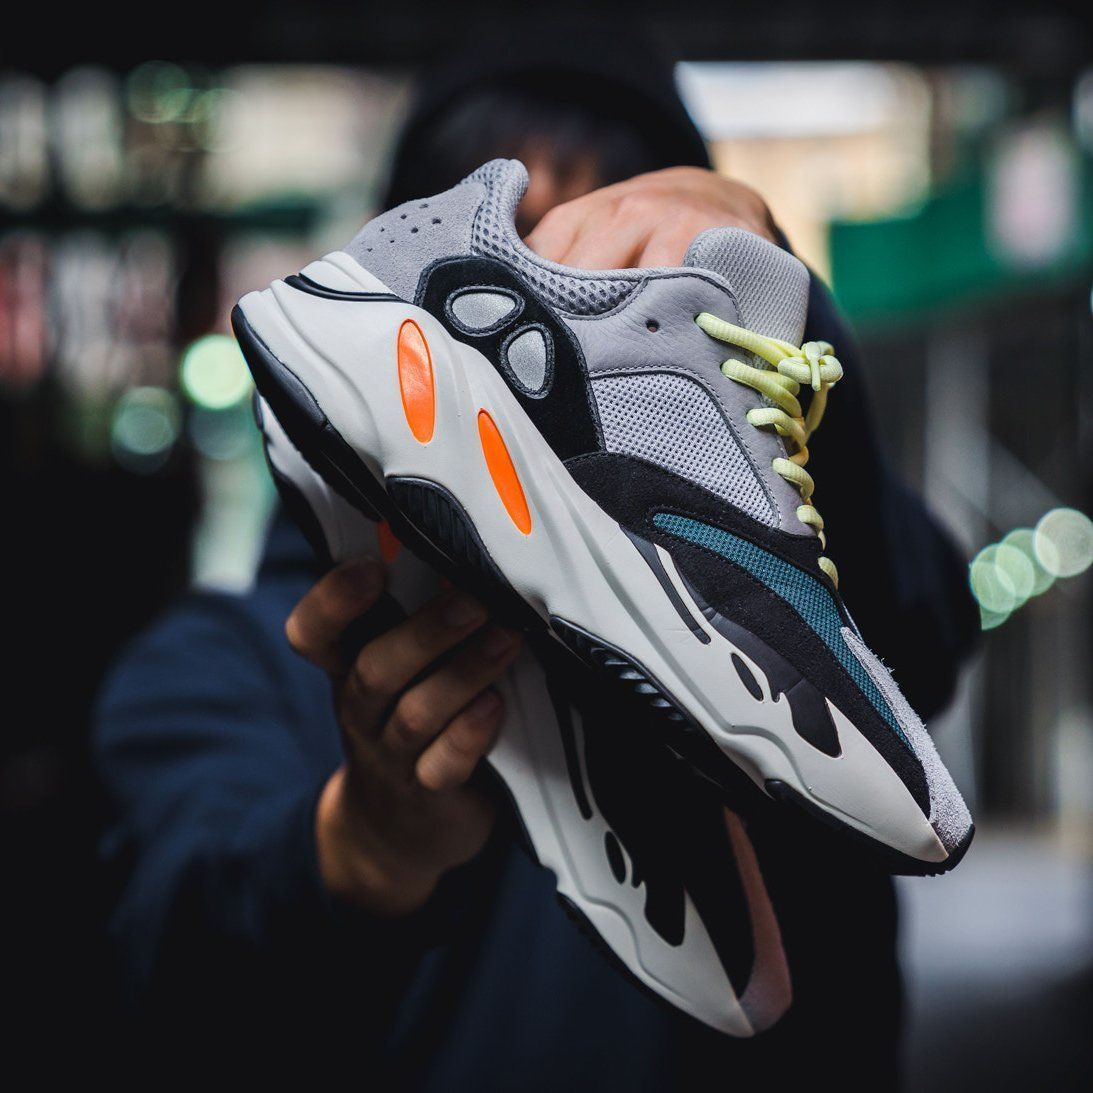 free delivery latest fashion picked up Adidas yeezy 700 only $46 in amazon.com and get one free ...